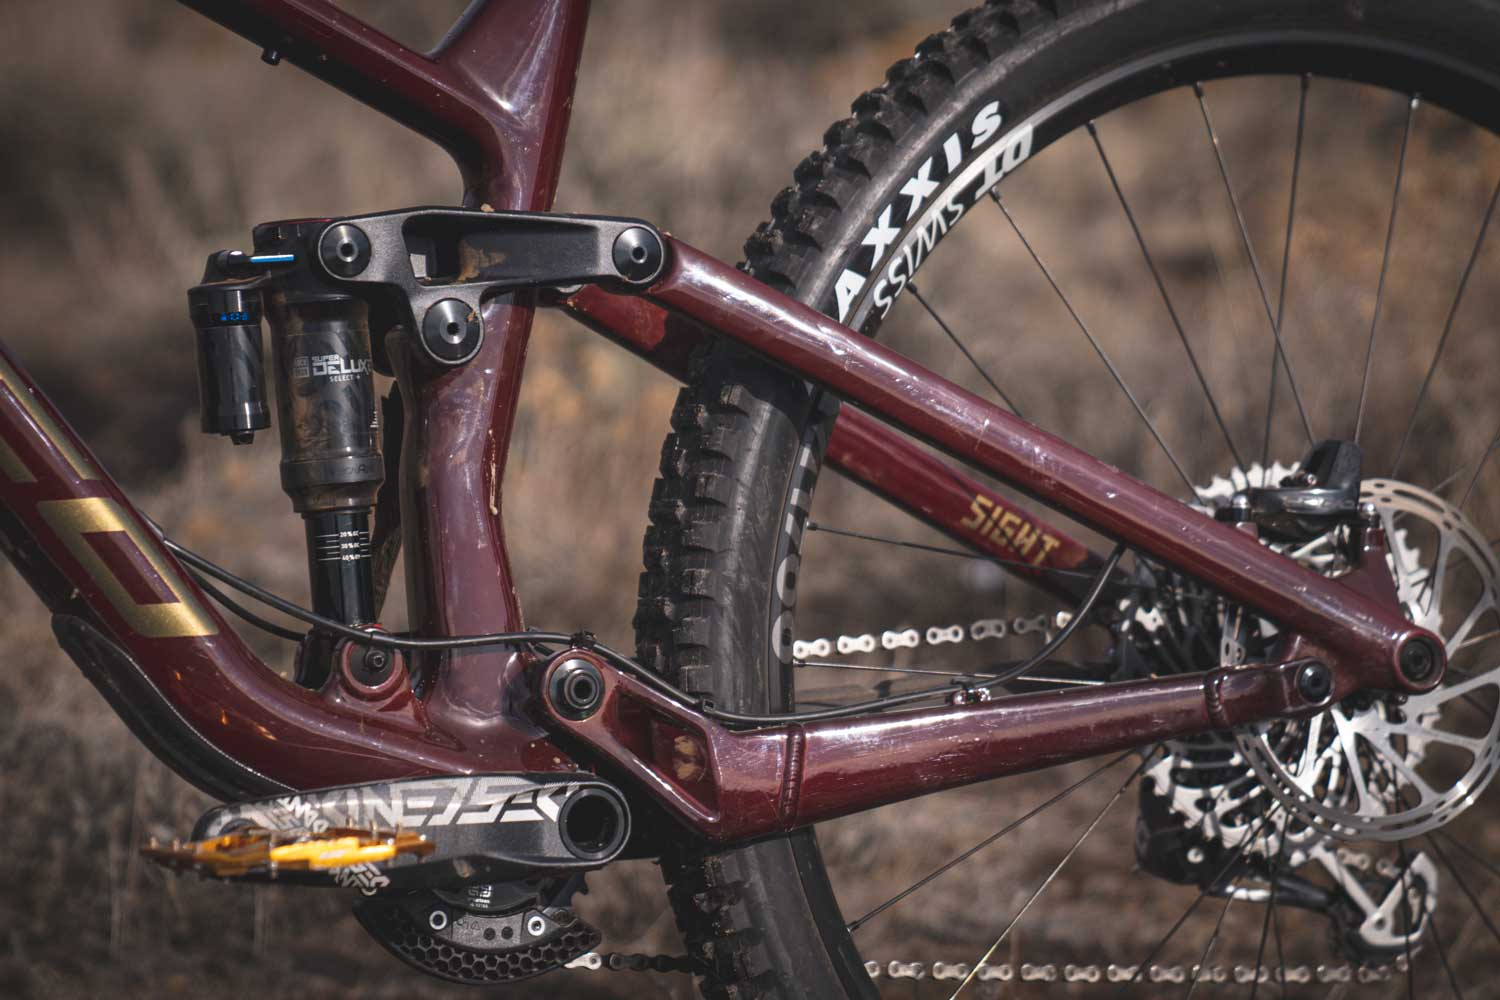 2020 Norco Sight Specs